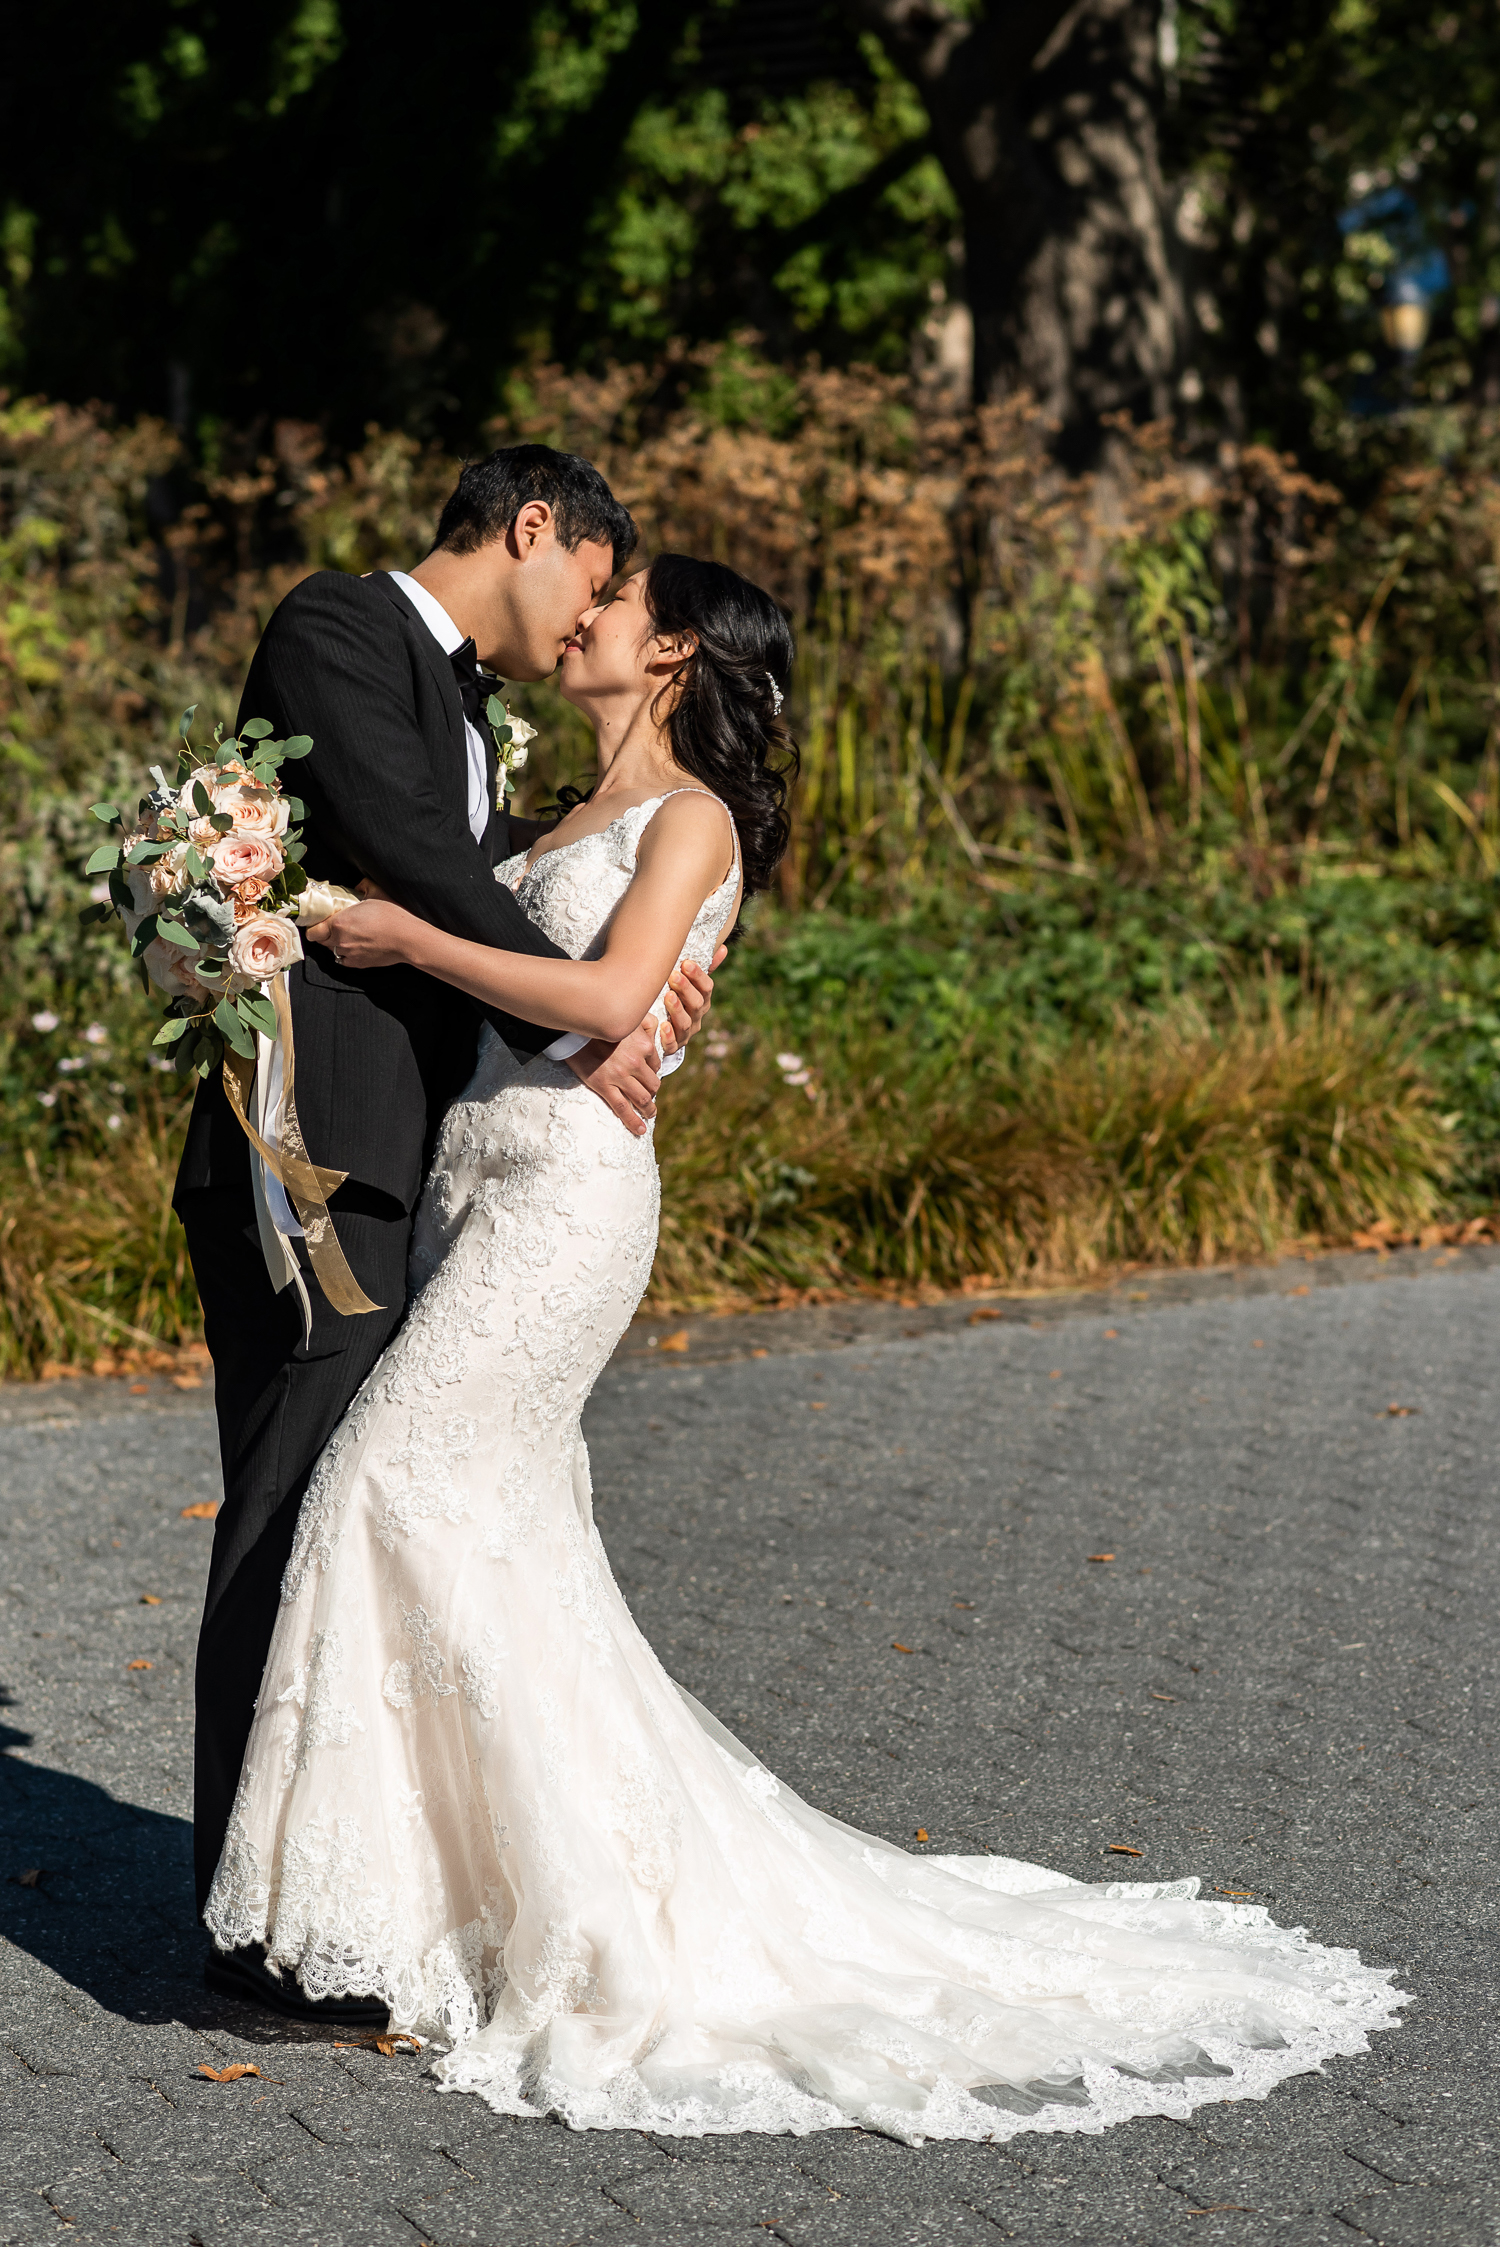 Emma_Cleary_Photo_and_Video_wedding_photos_0011